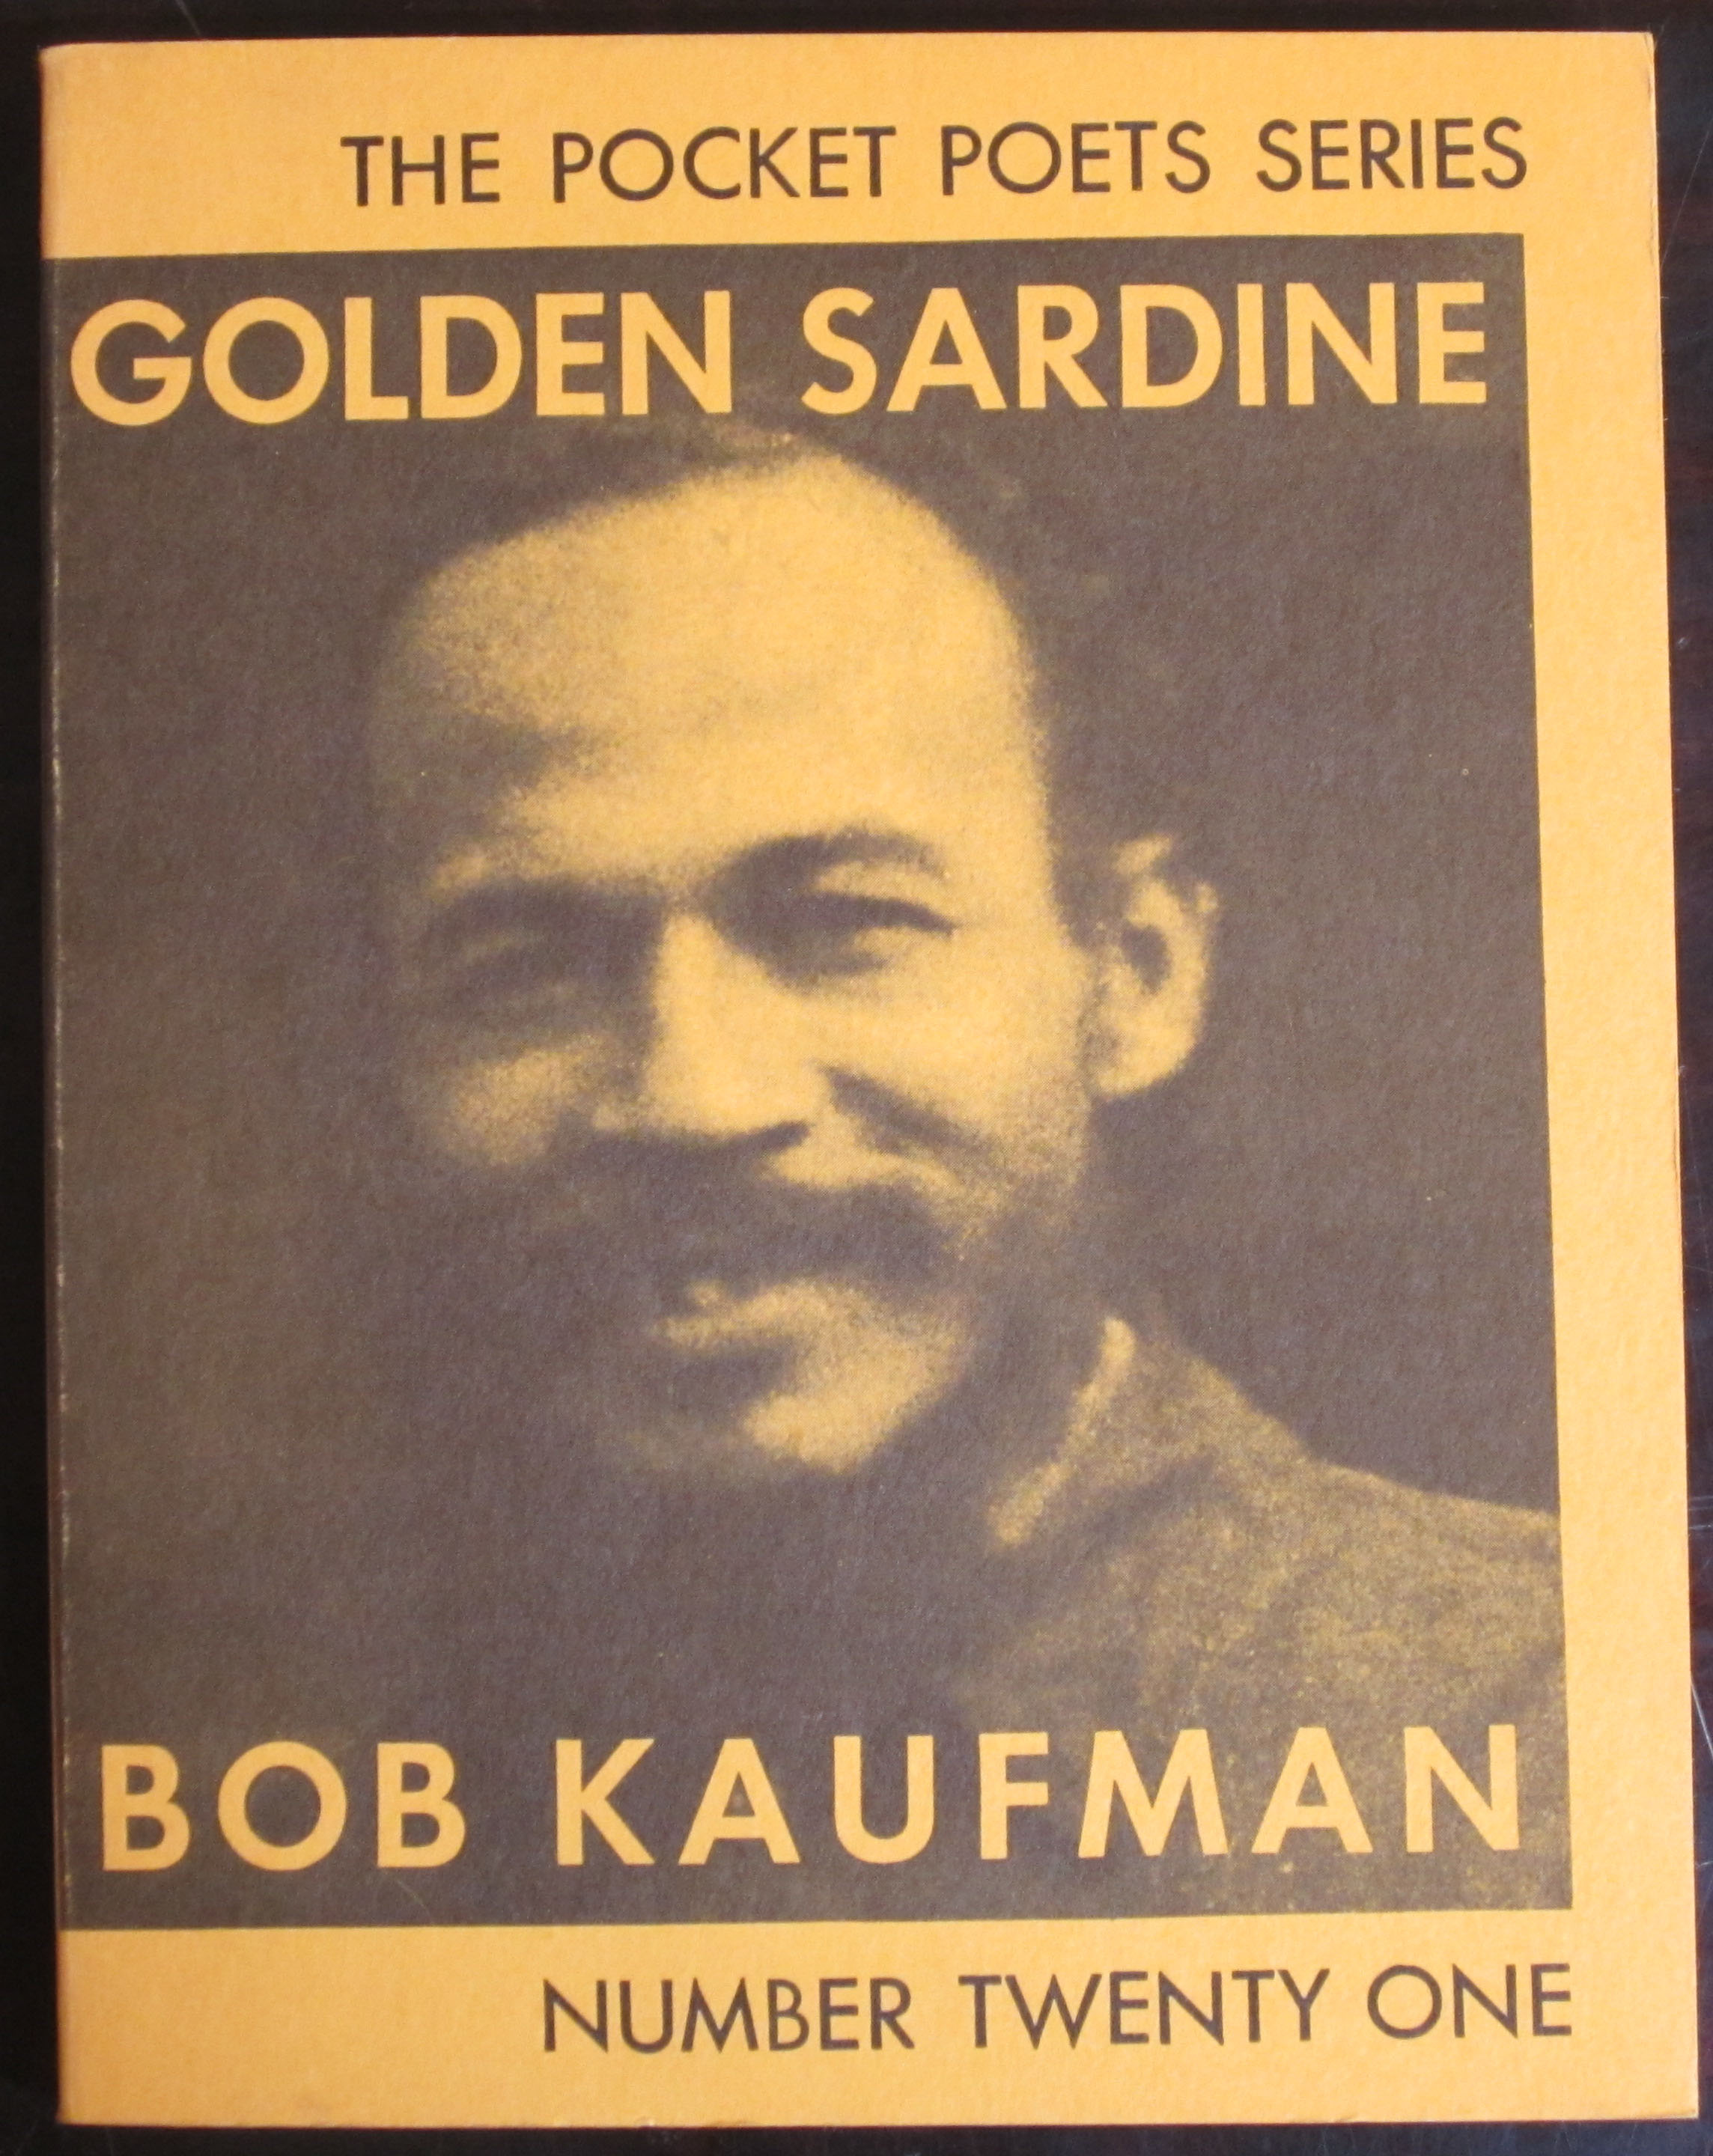 Bob Kaufman on the cover of his book of poetry, Golden Sardine from the Pocket Poets Series, 1967. (PS3521 .A7265G6 1967. Photograph by Petrina Jackson)